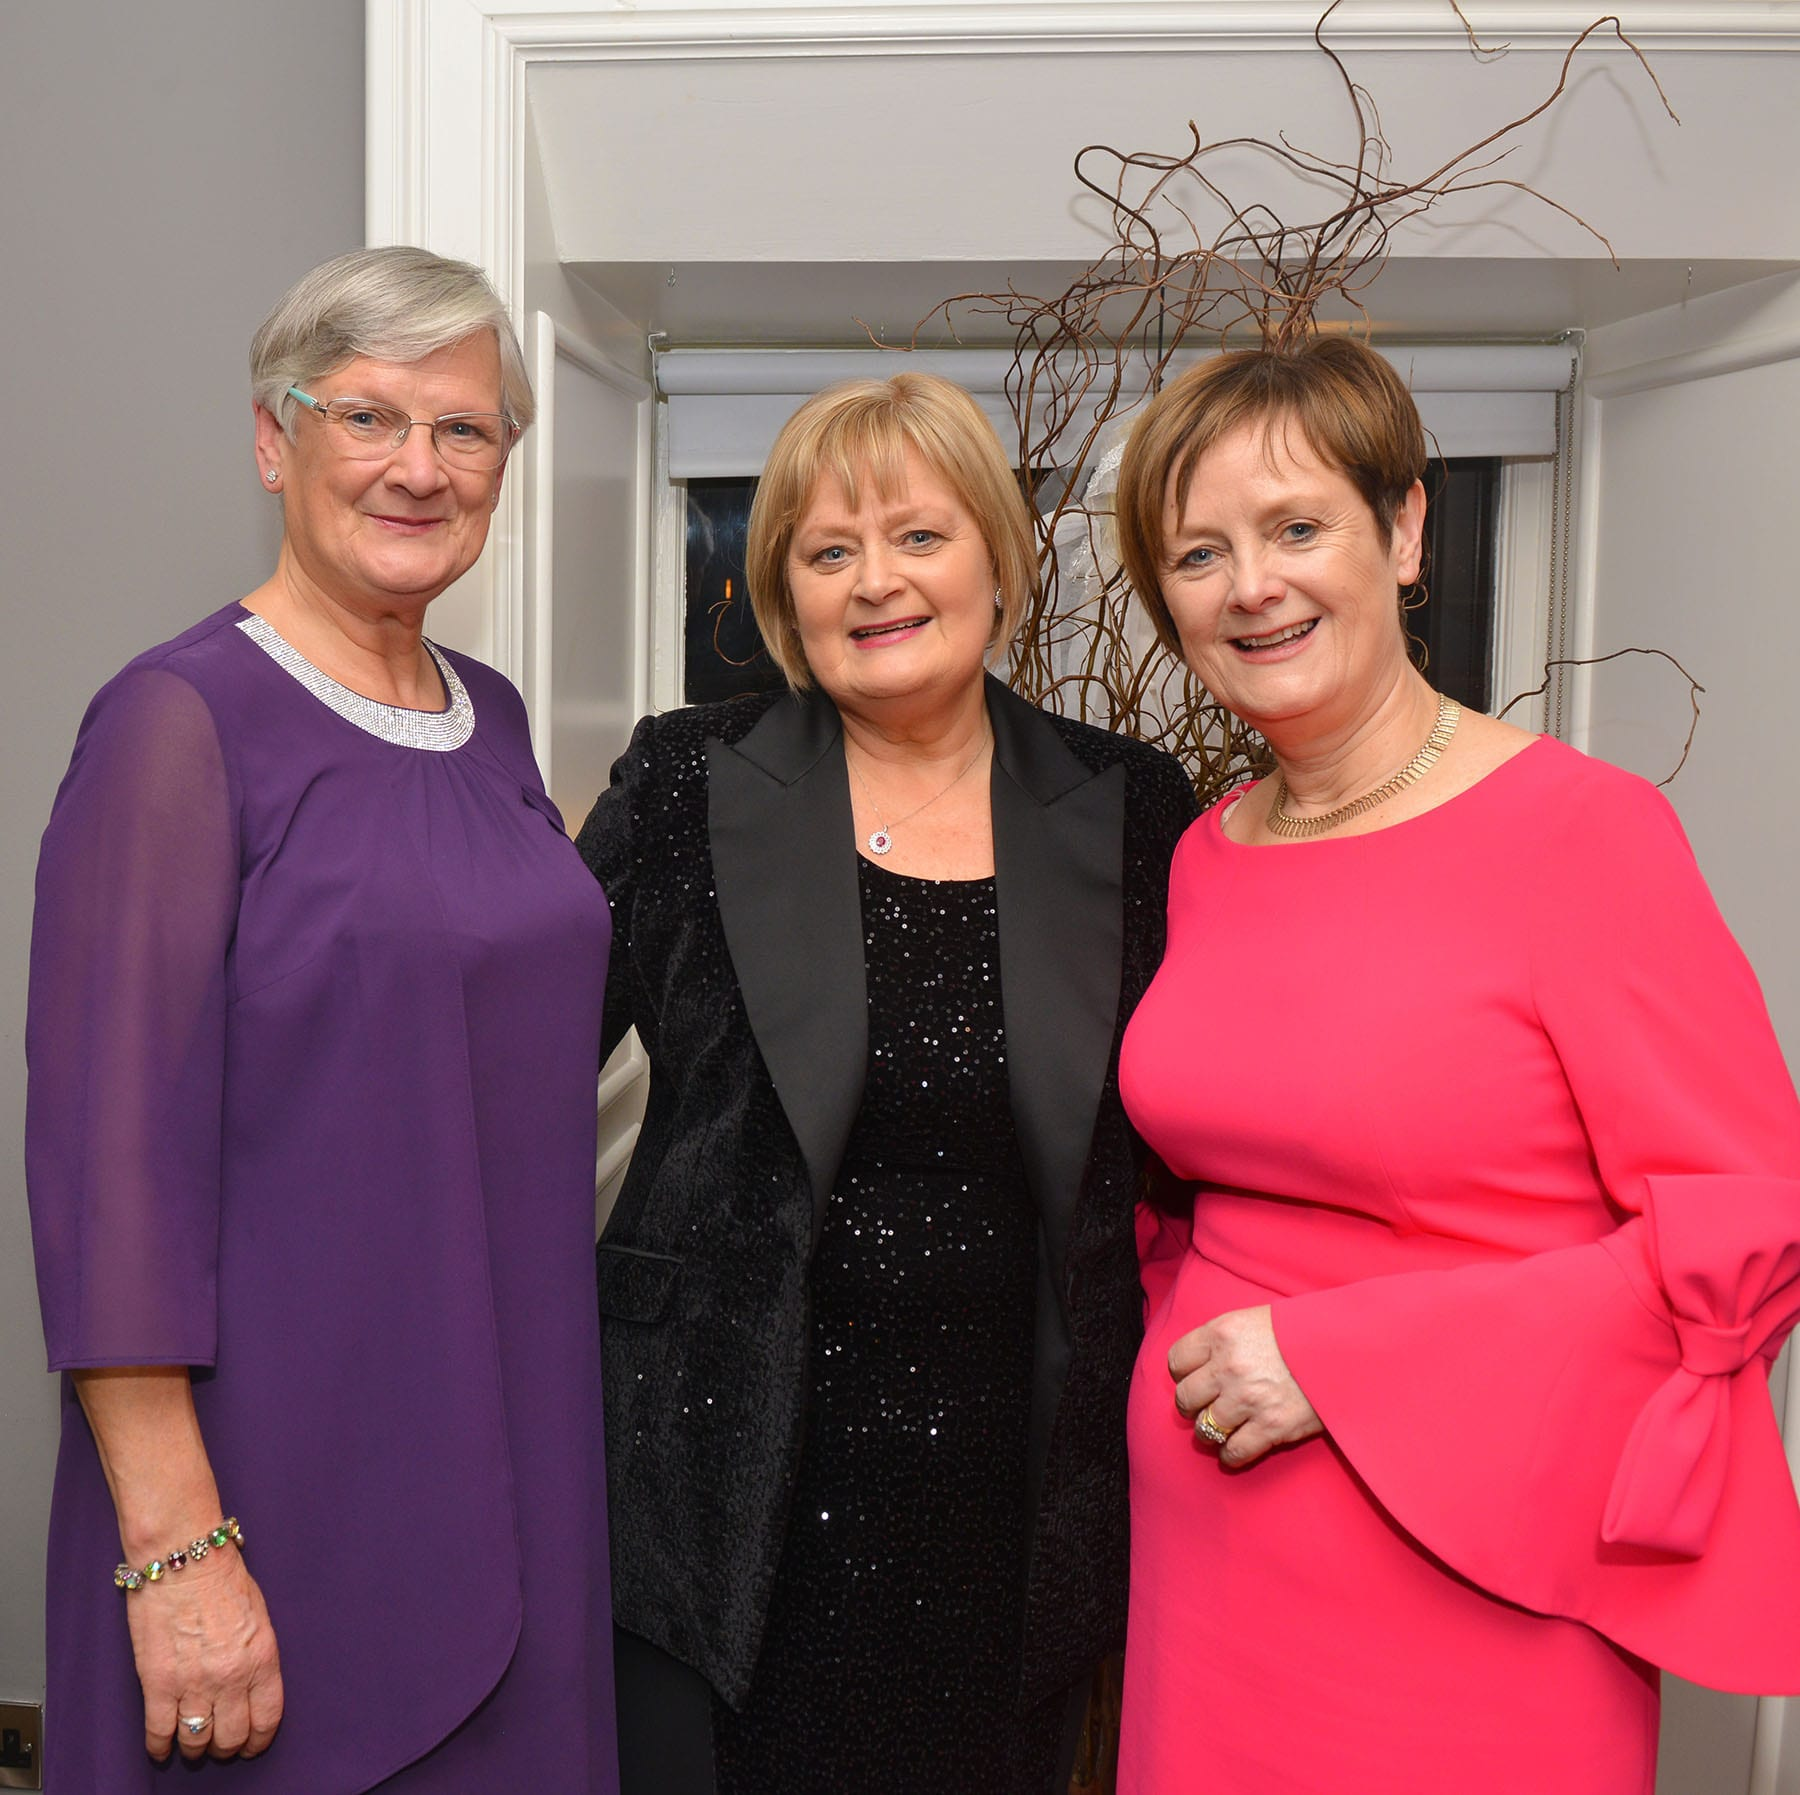 Picture special: House Hotel event in aid of Breast Cancer Research